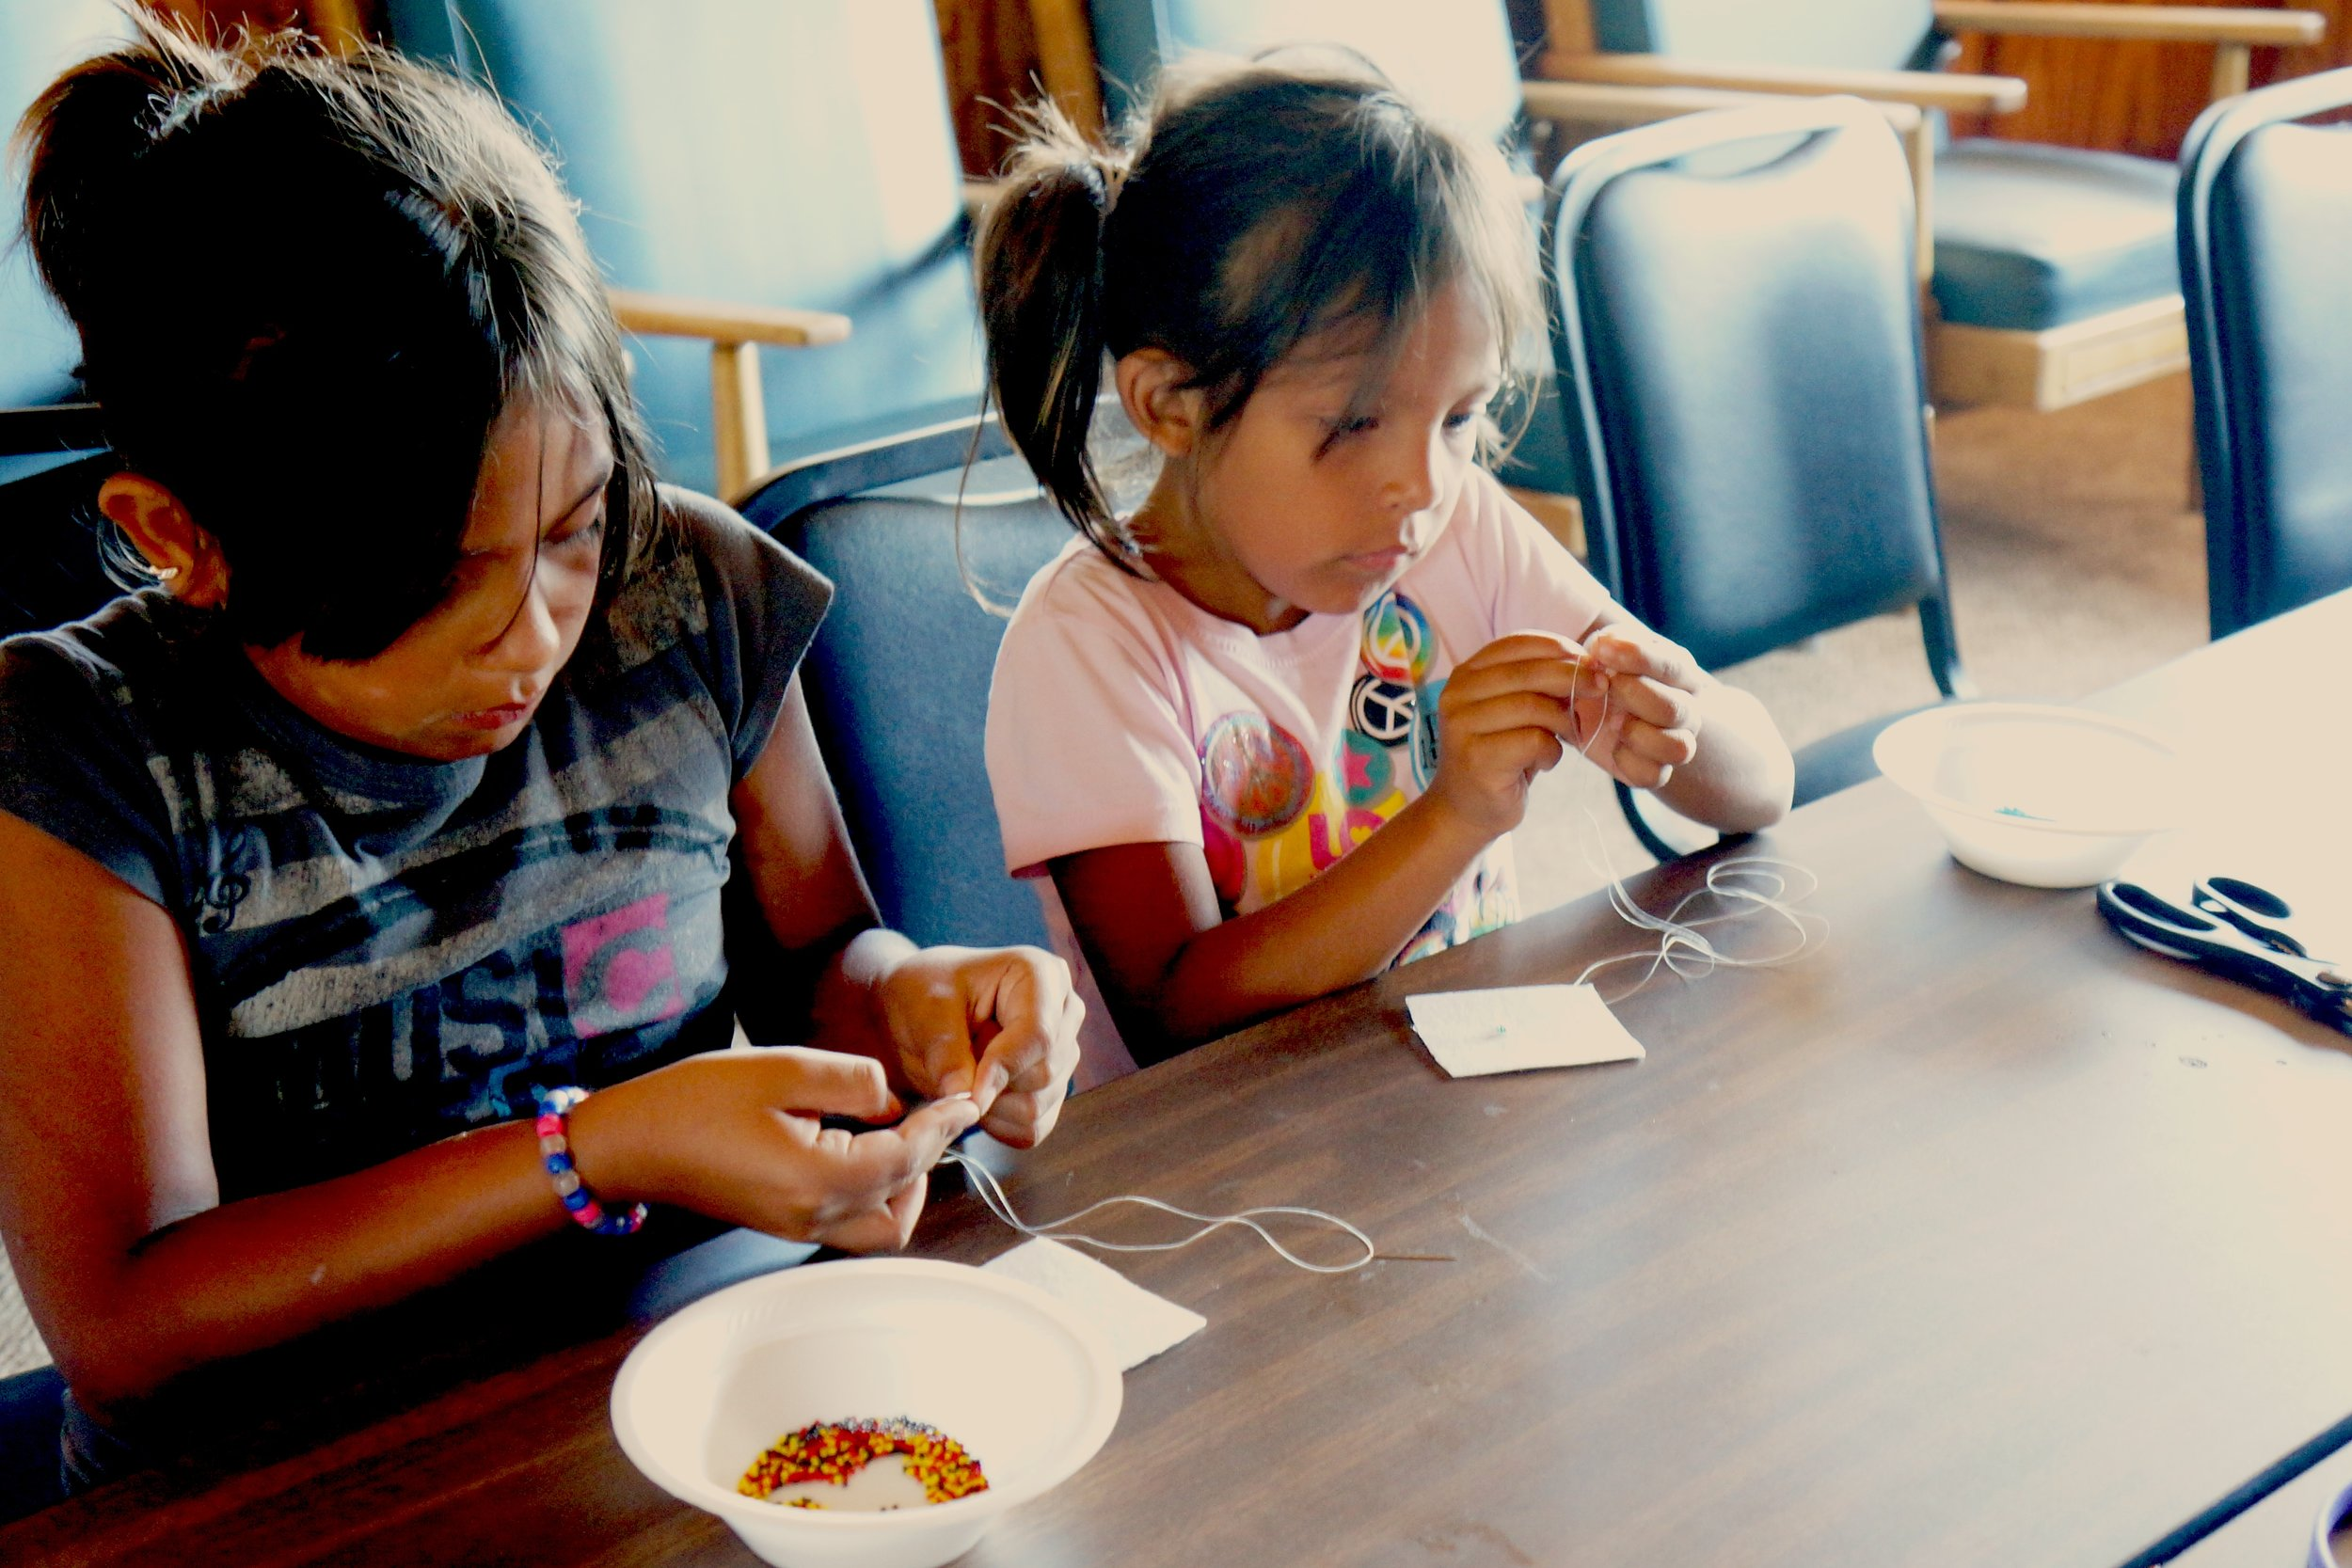 Zoey, 6 and Sophia, 7 during ANCC Summer Session, 2012. Beading simple objects, like a medallion or a hairband.